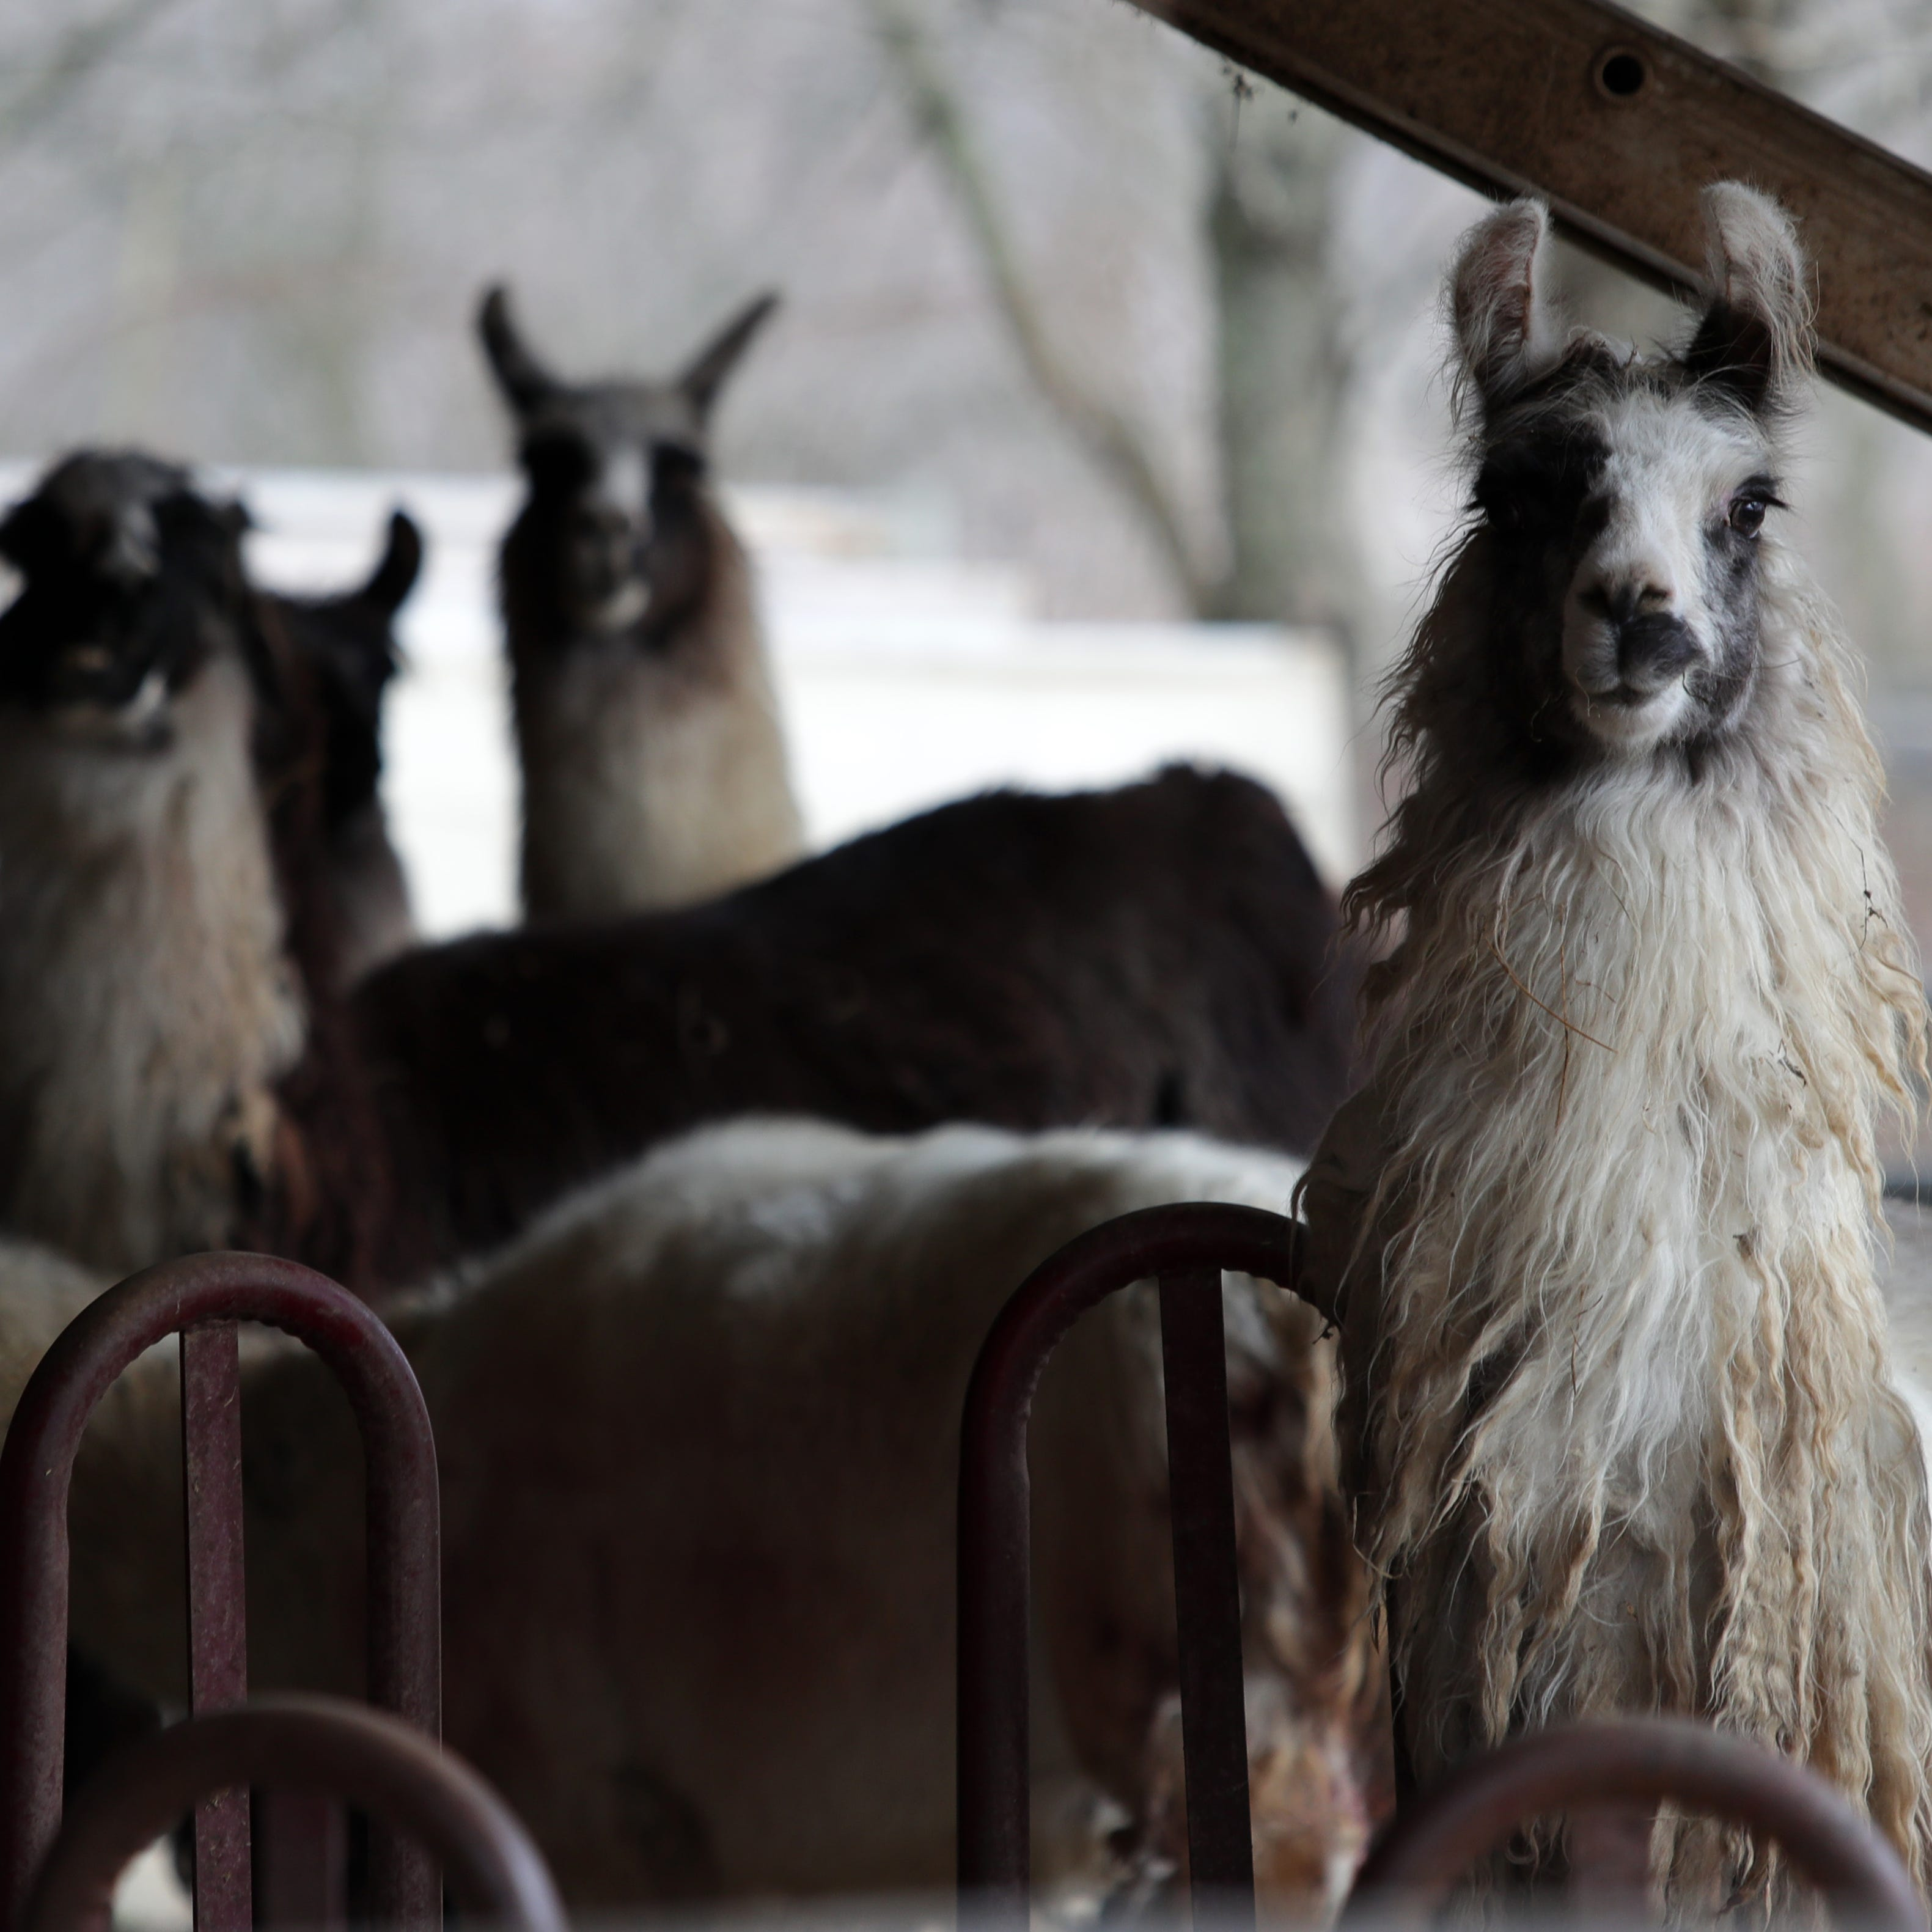 Pack of dogs spotted near site of Louisville llama attack, animal services says